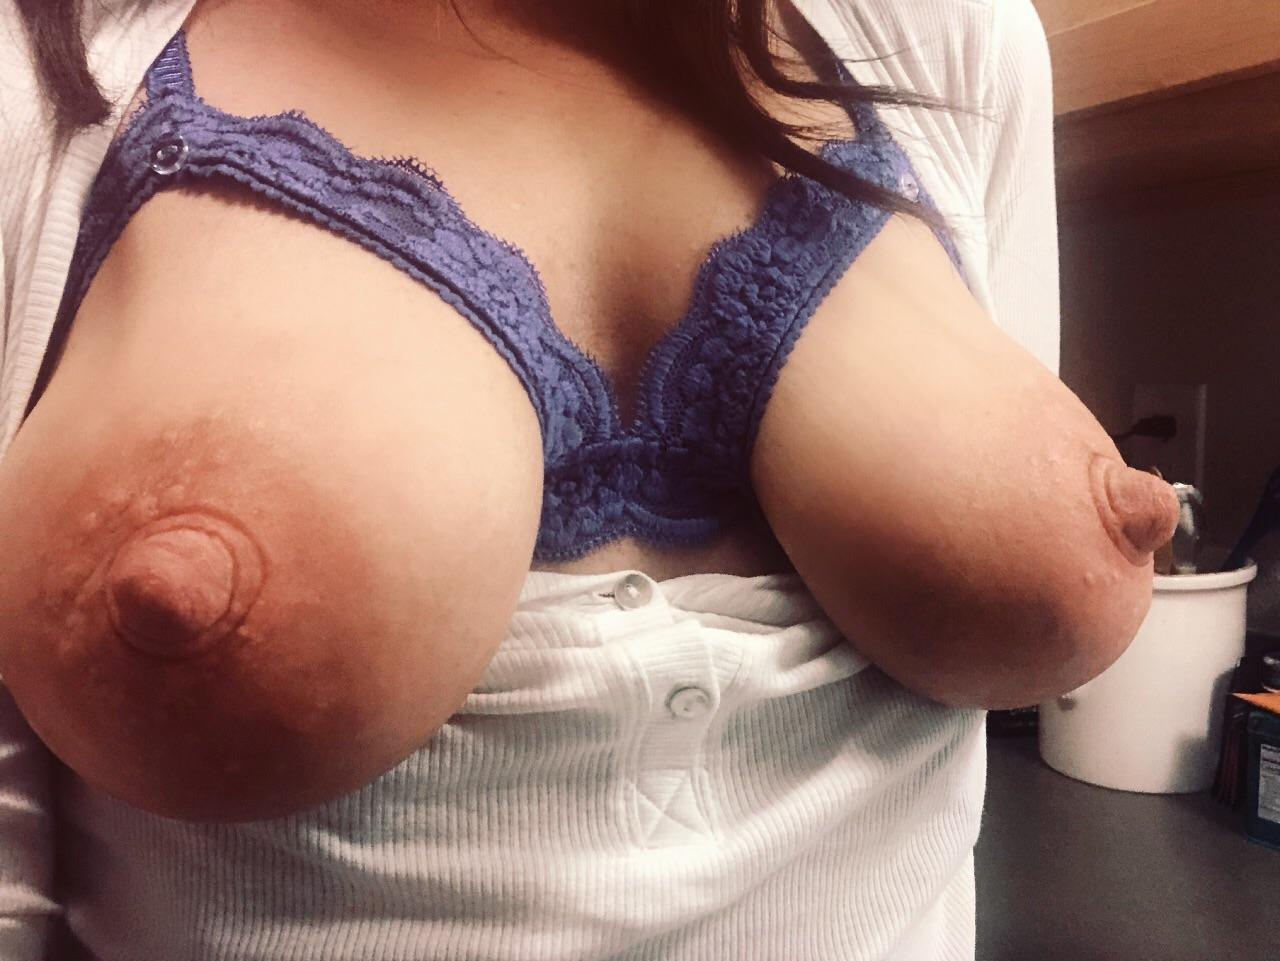 Saggy tits hanging out of bra